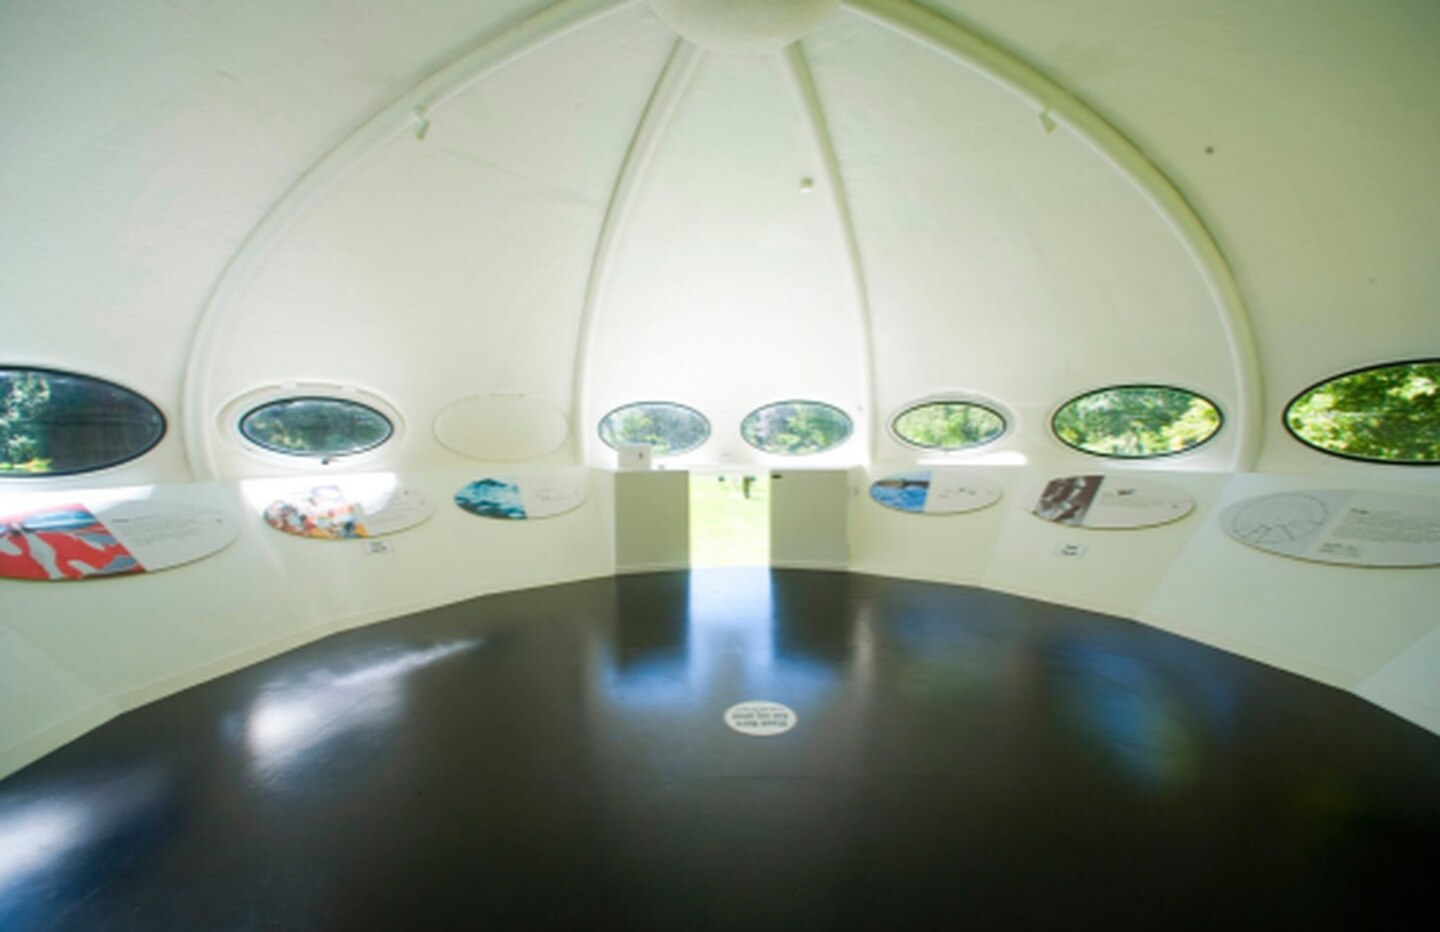 The inside of the Futuro home. Photo: Supplied